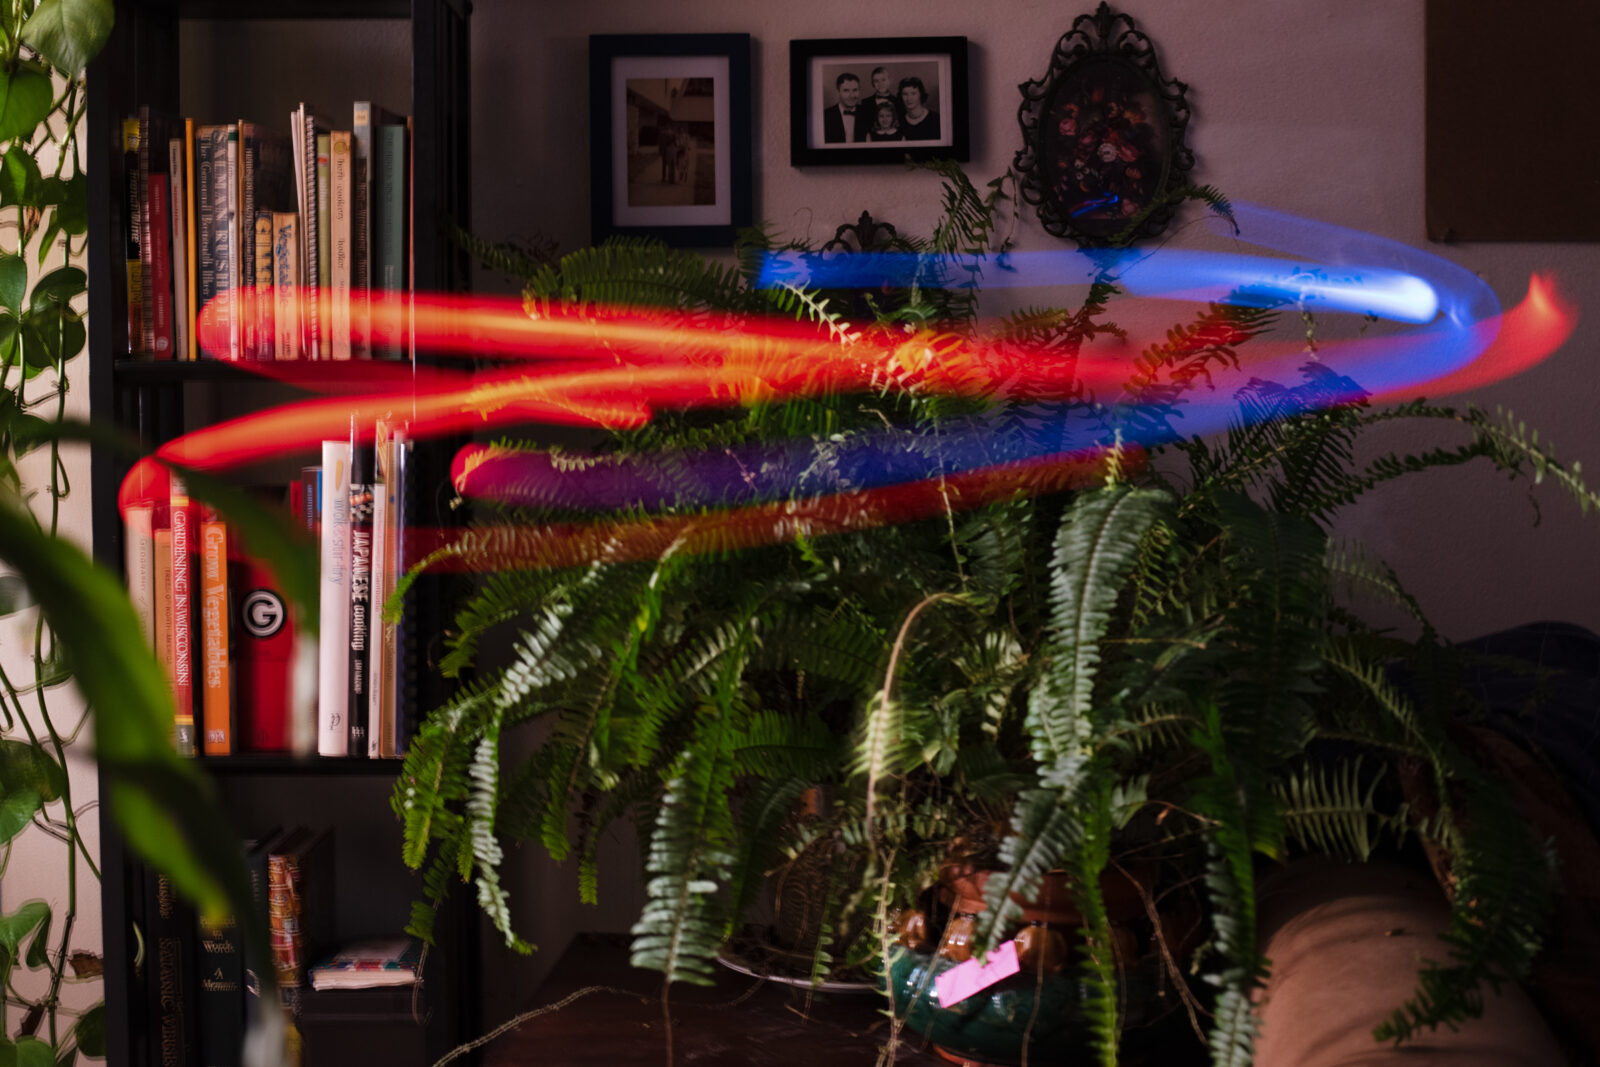 Blue and red light trails hovering over a fern house plant